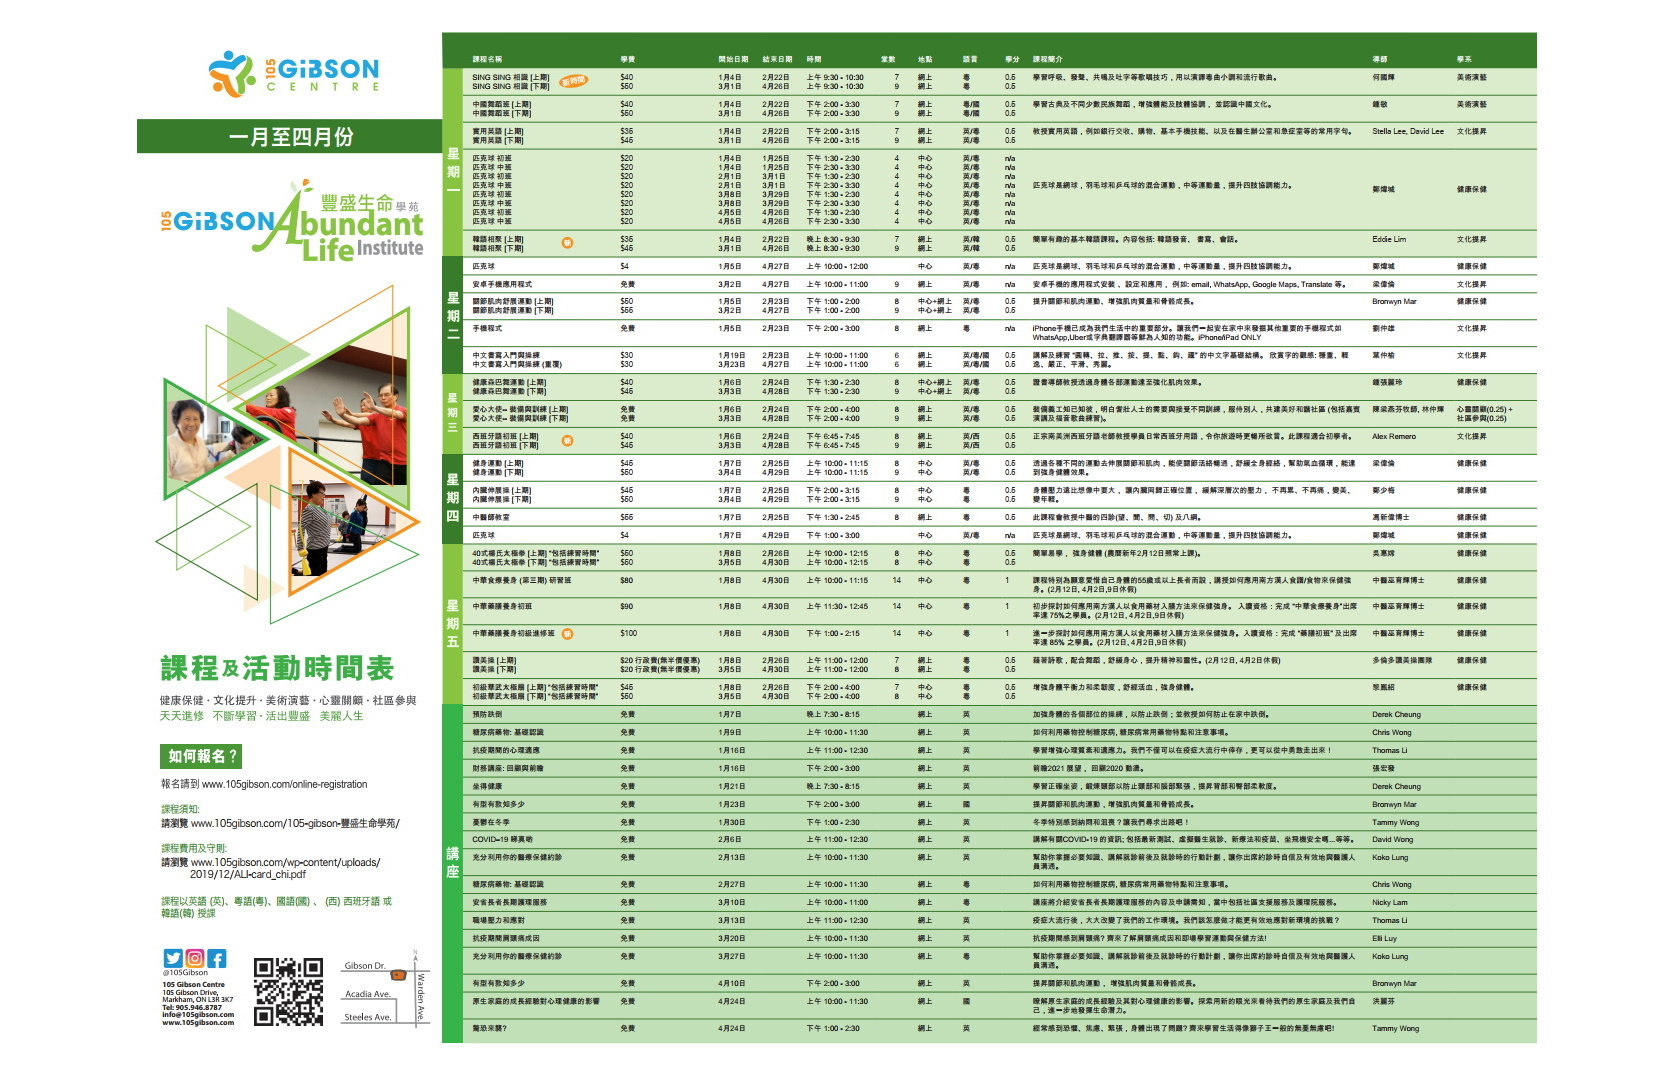 105 Gibson Centre Abundant Life Institute Program & Event Time Table for 2021 January to April (Chinese)